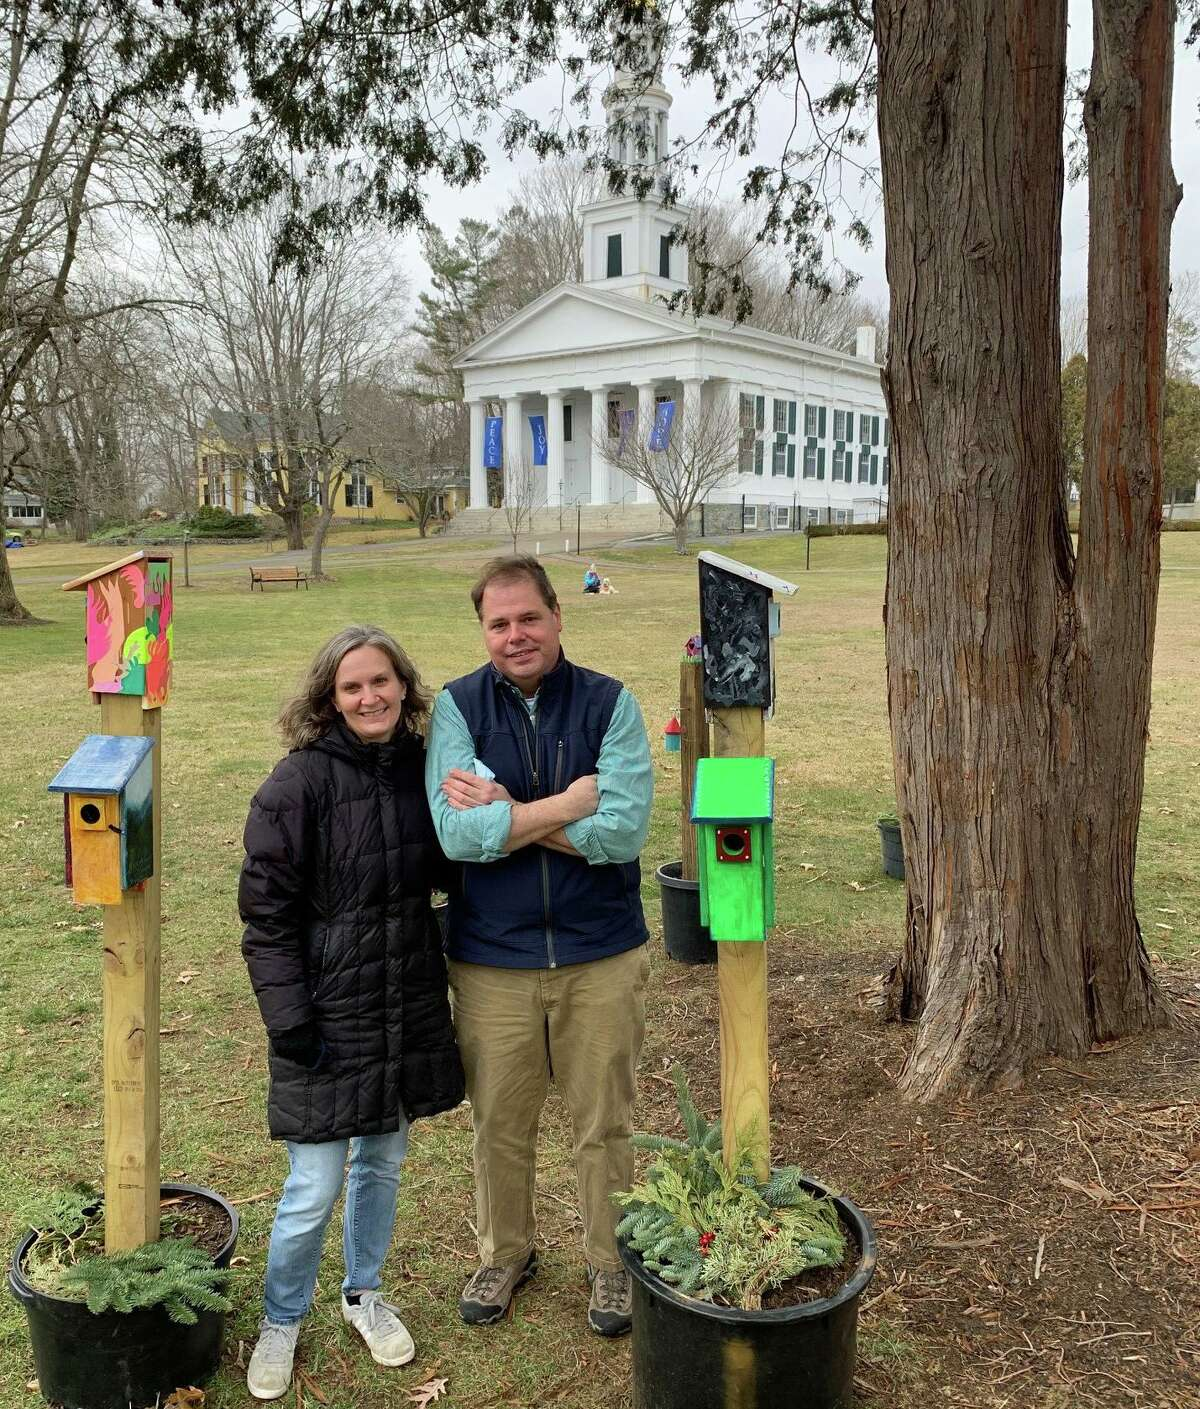 From left, Rev. Sarah Vetter, who along with her husband, the Rev. Todd Vetter, stand among the Heart Houses in front of the First Congregational Church in Madison.